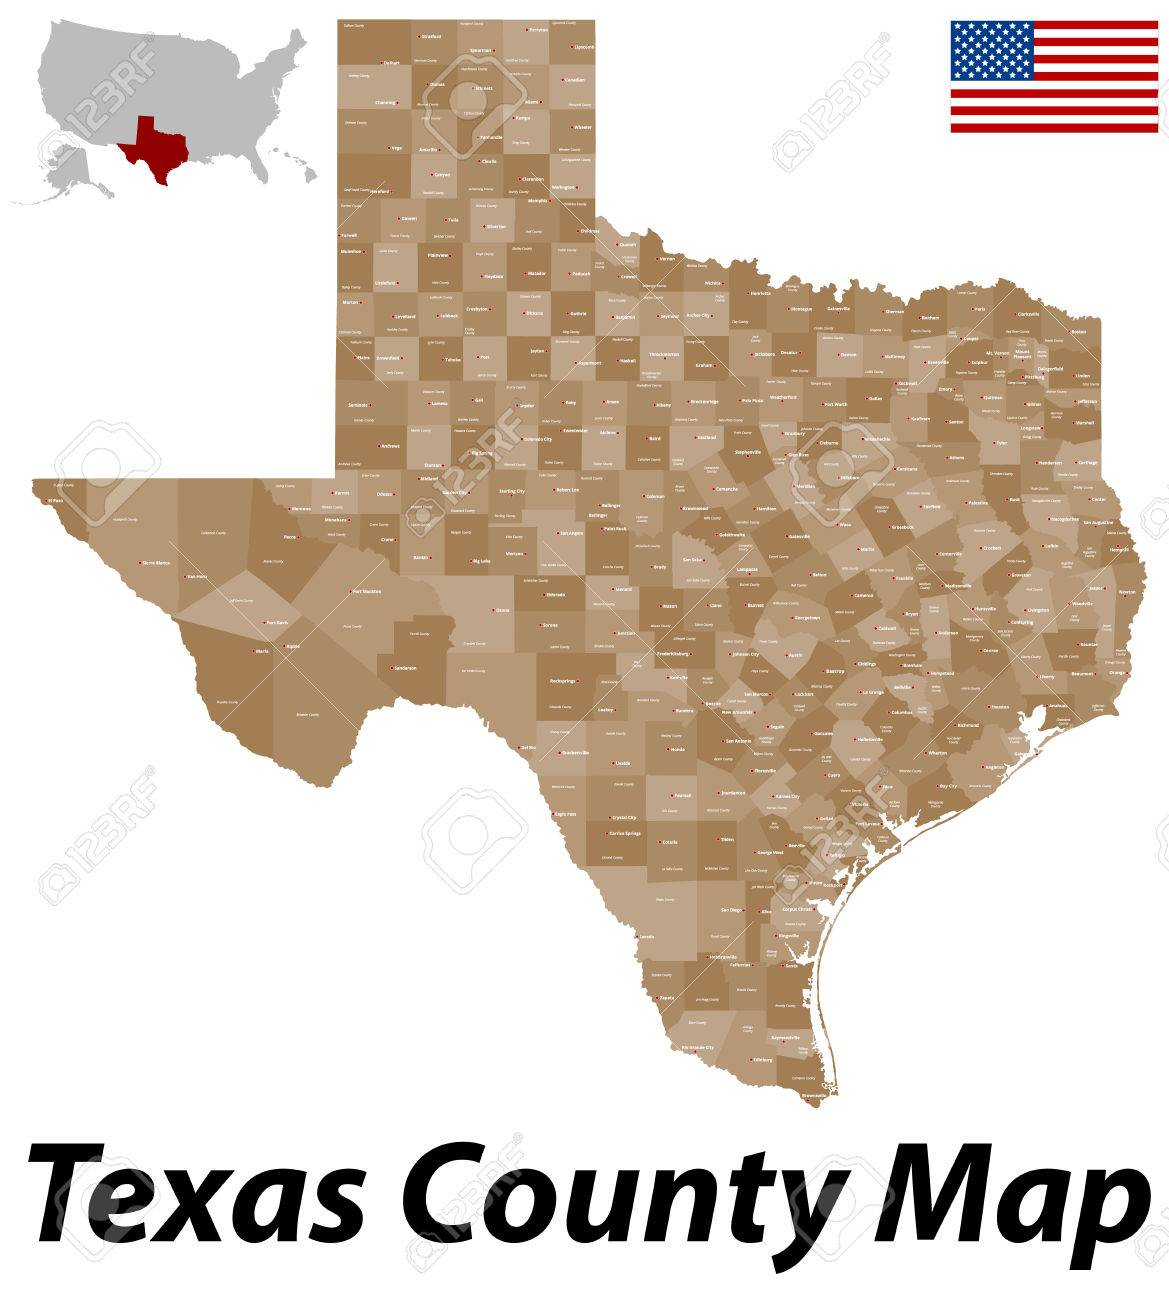 County And City Map Of Texas.A Large And Detailed Map Of The State Of Texas Counties And County